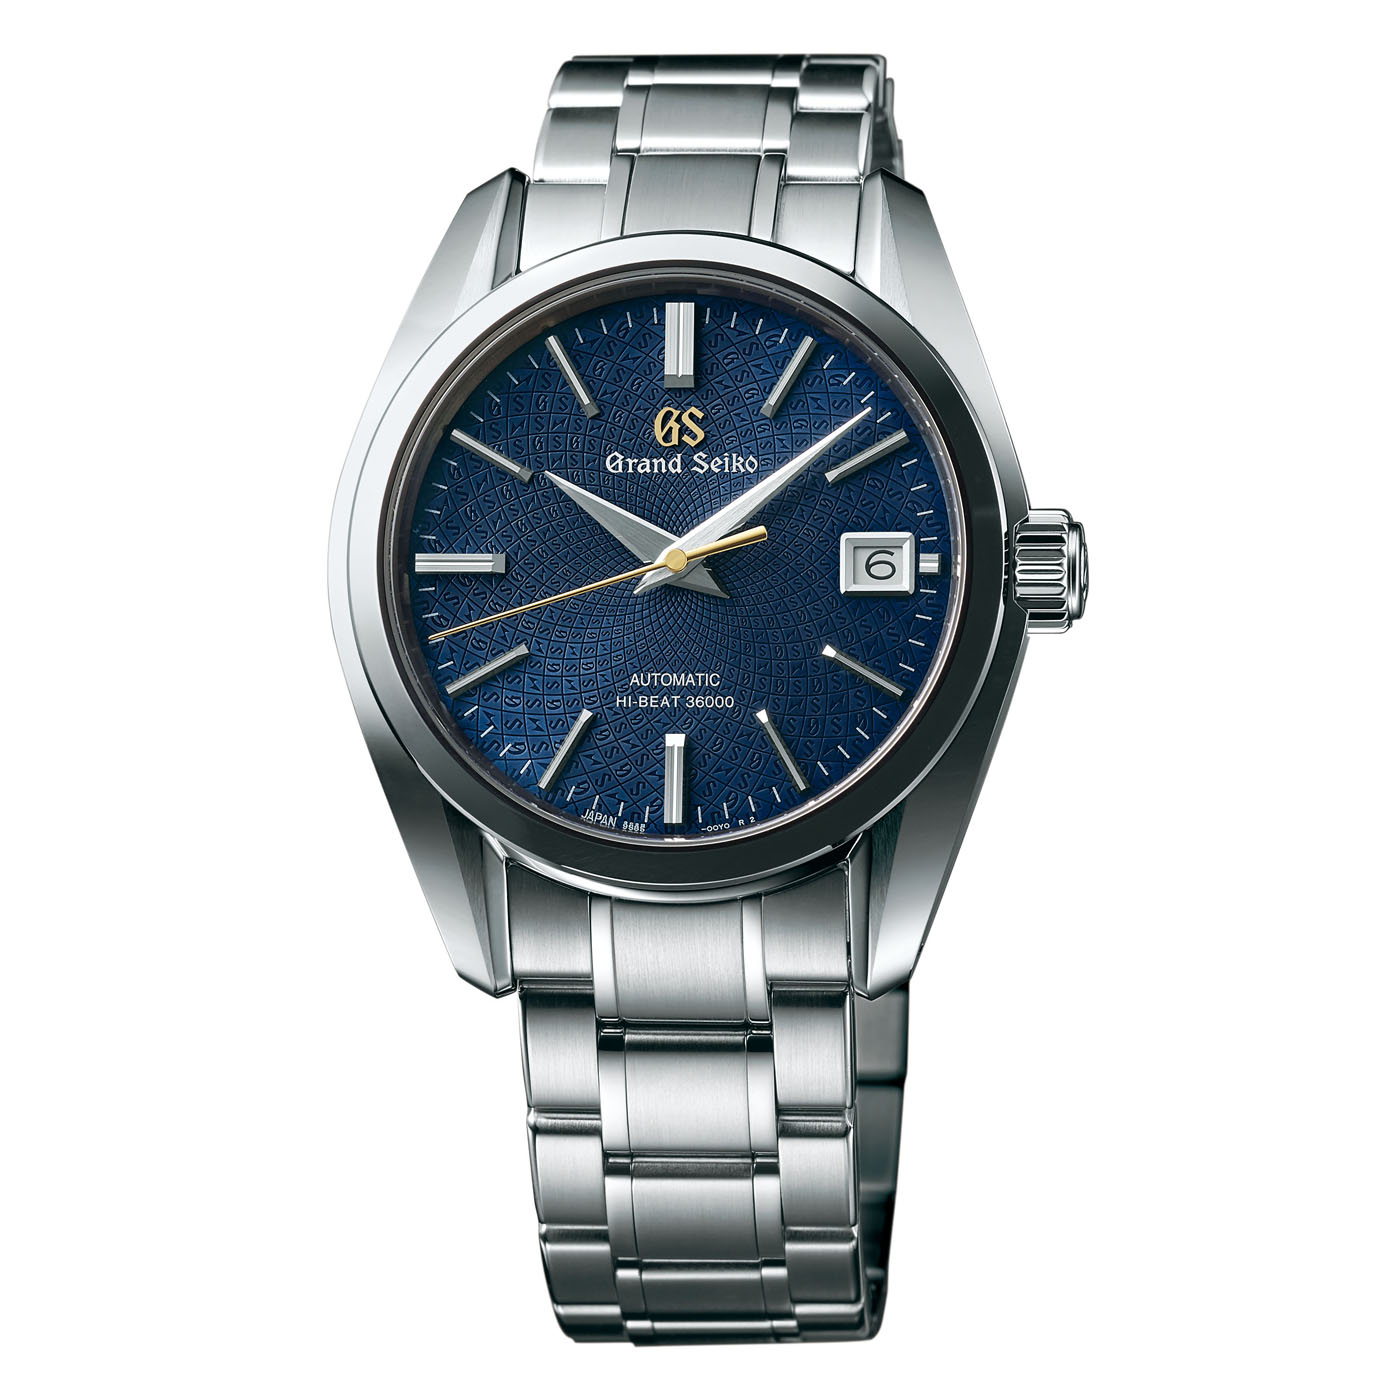 Grand Seiko Hi-Beat 36000 SBGH267 - Baselworld 2018